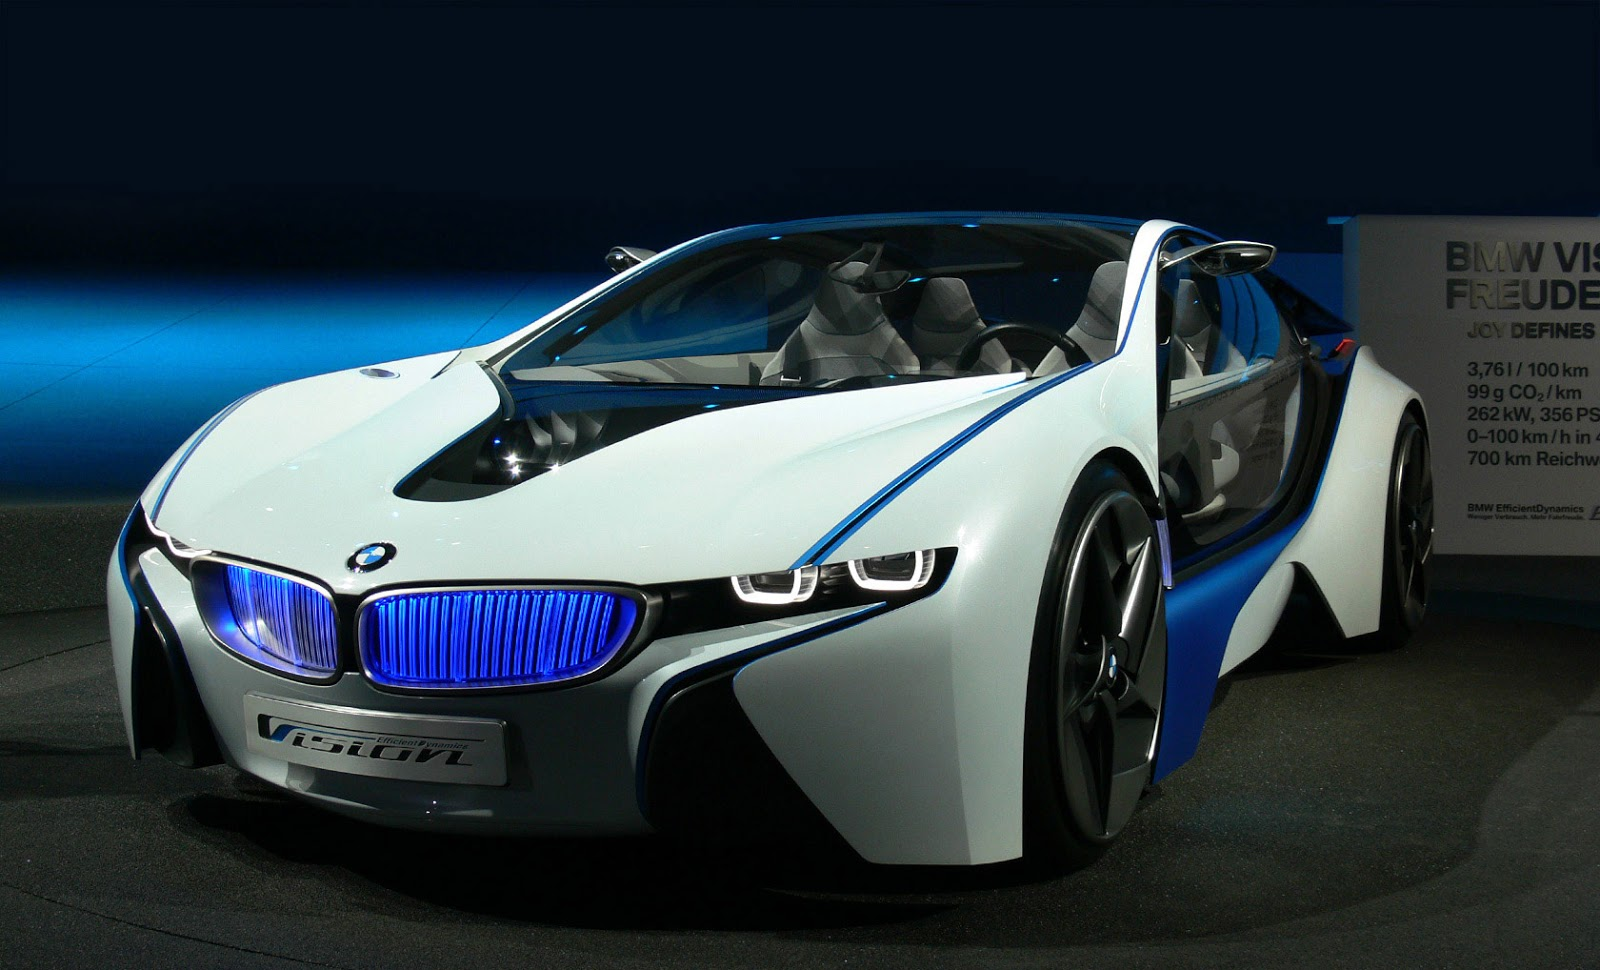 Desktop HD Wallpapers BMW I8 Wallpapers HD